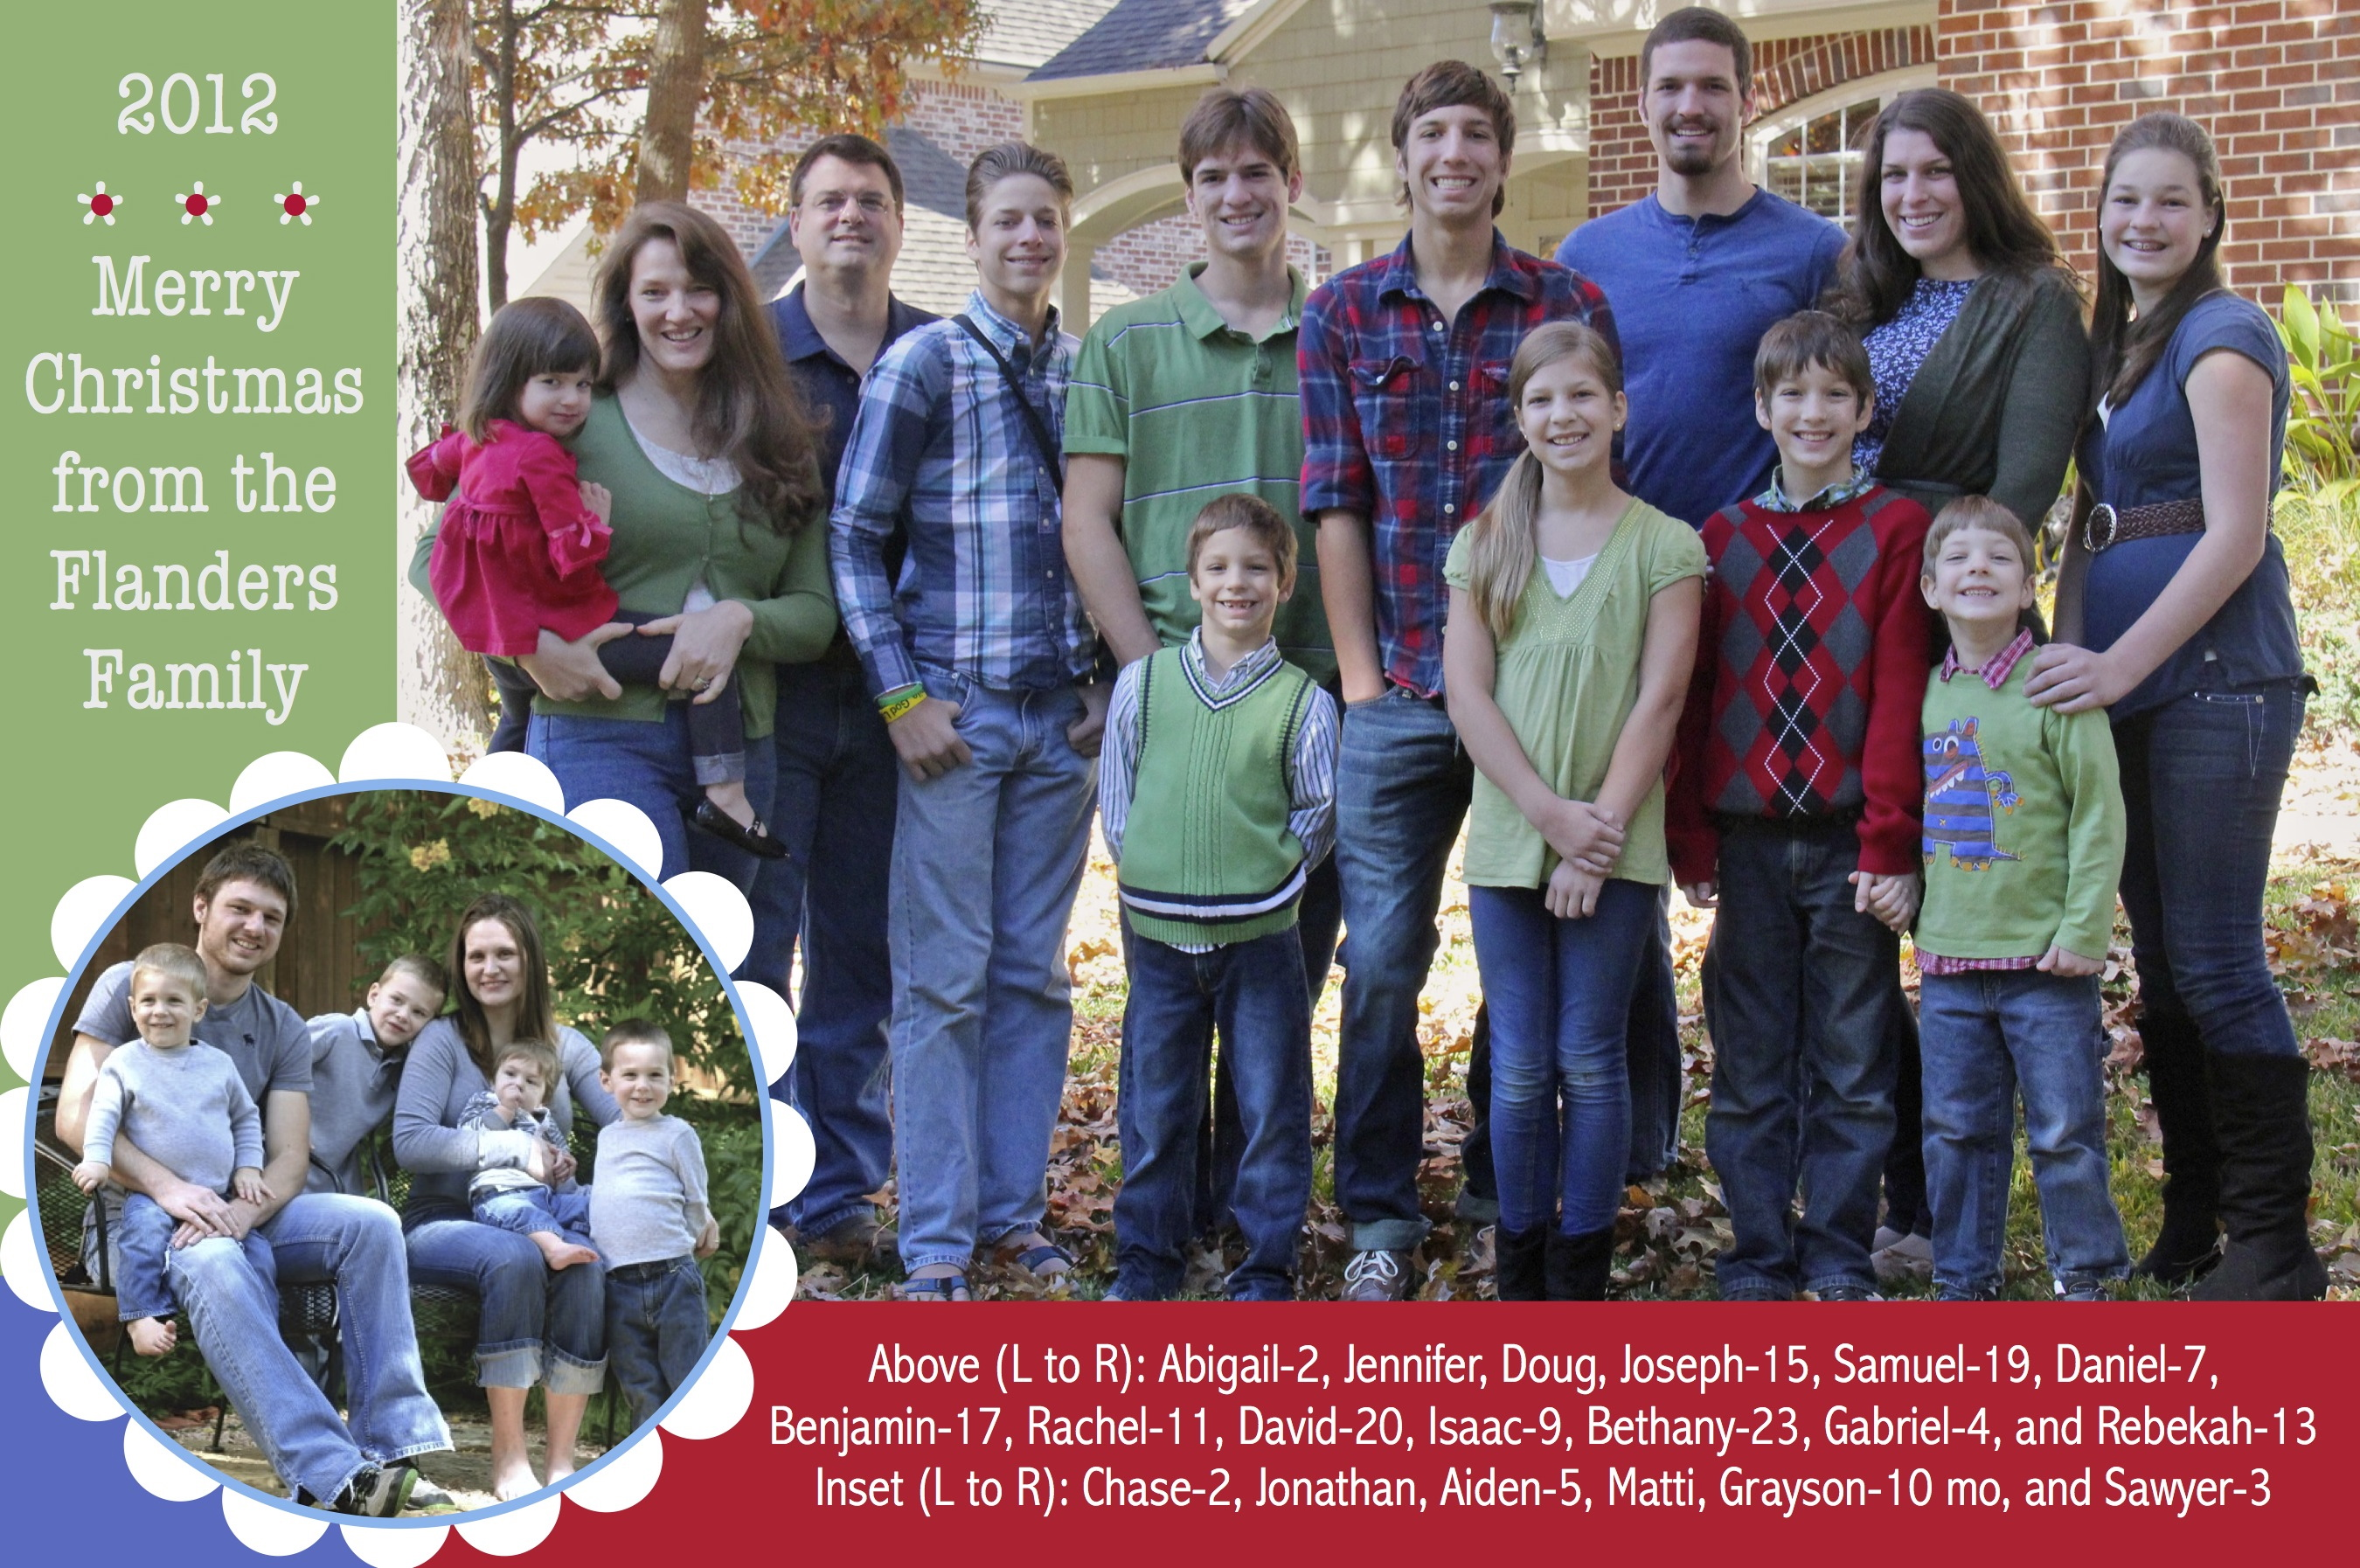 Merry Christmas from the Flanders Family